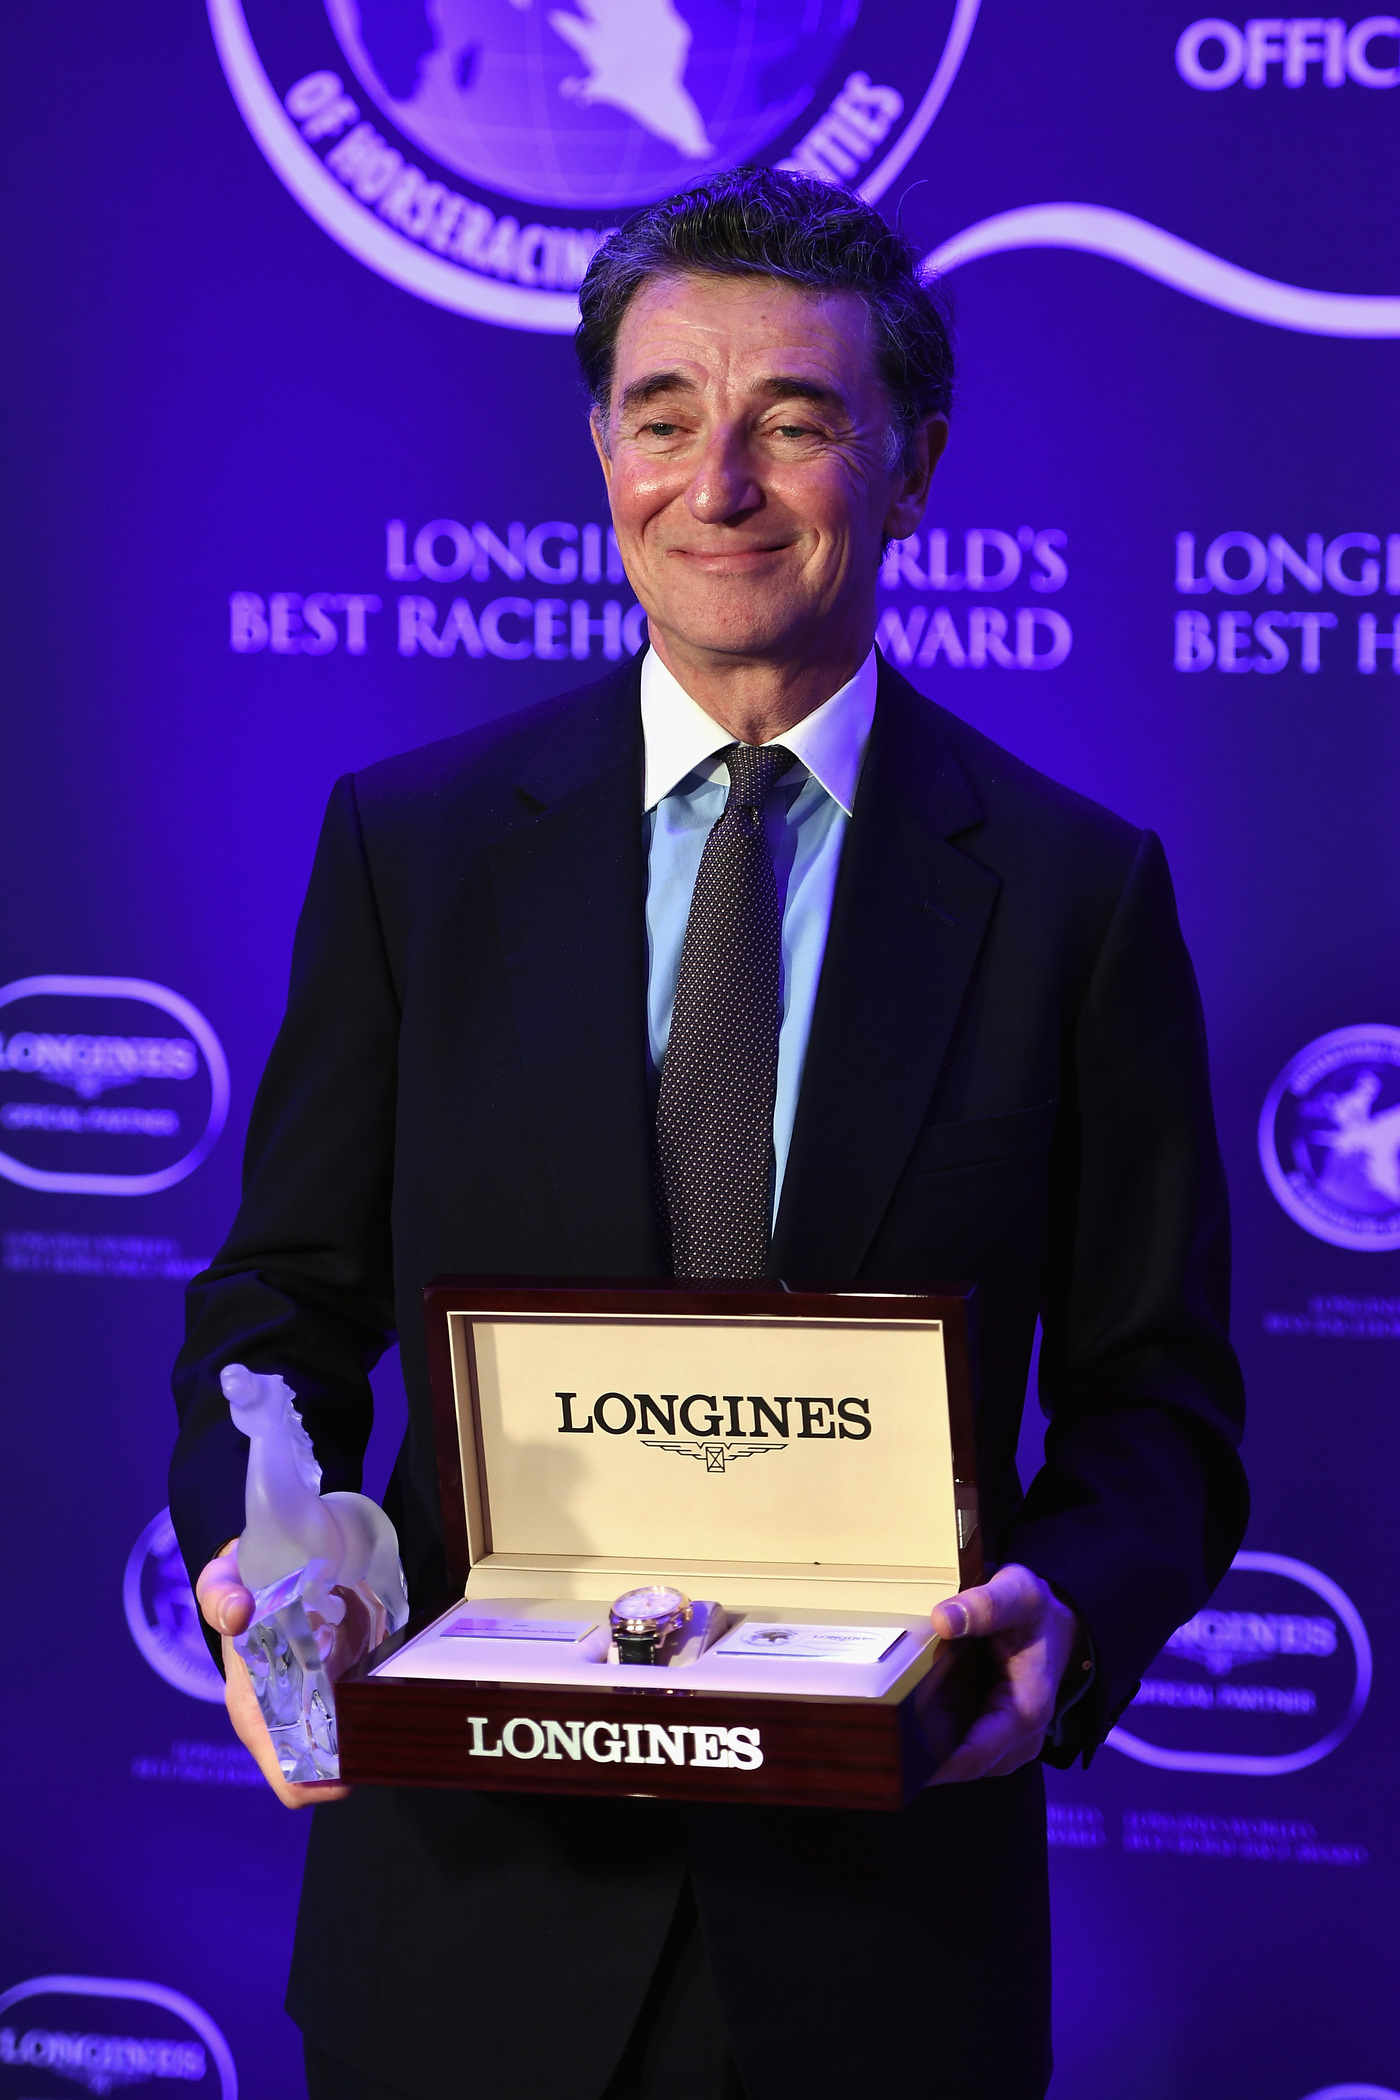 Longines Flat Racing Event: Arrogate crowned the Longines World's Best Racehorse for the second year in a row, Qatar Prix de l'Arc de Triomphe named Longines World's Best Horse Race for the second time 8